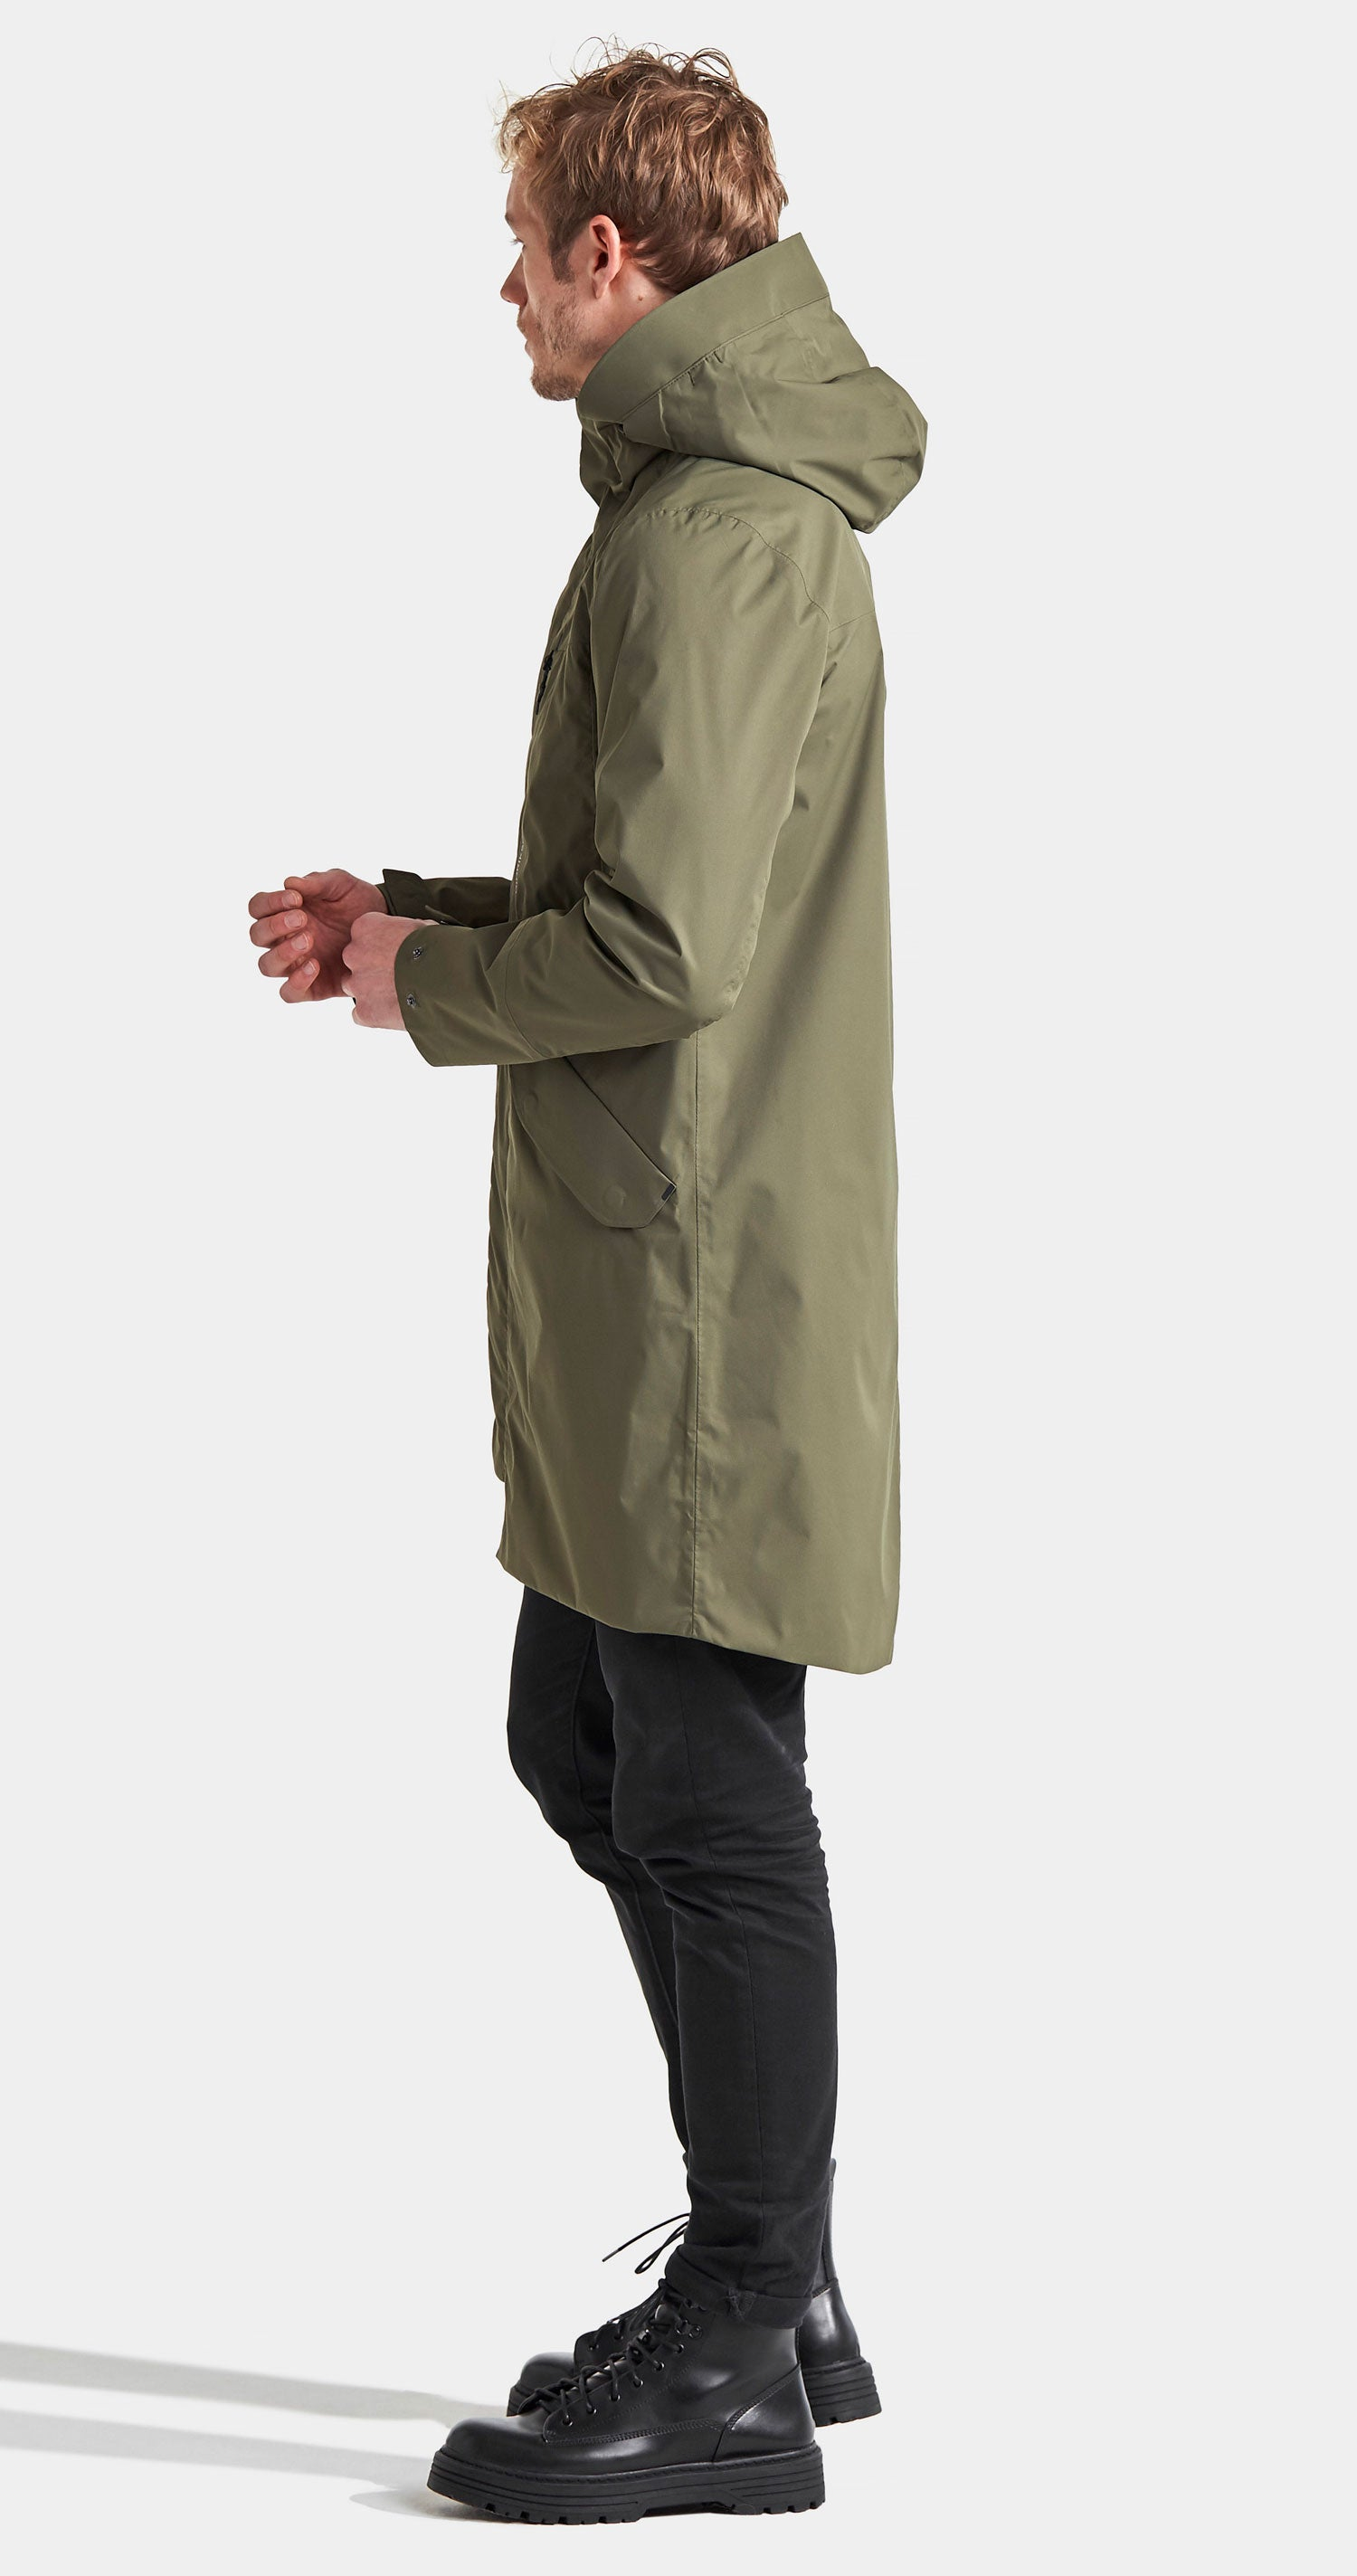 Parka coat scooped tail